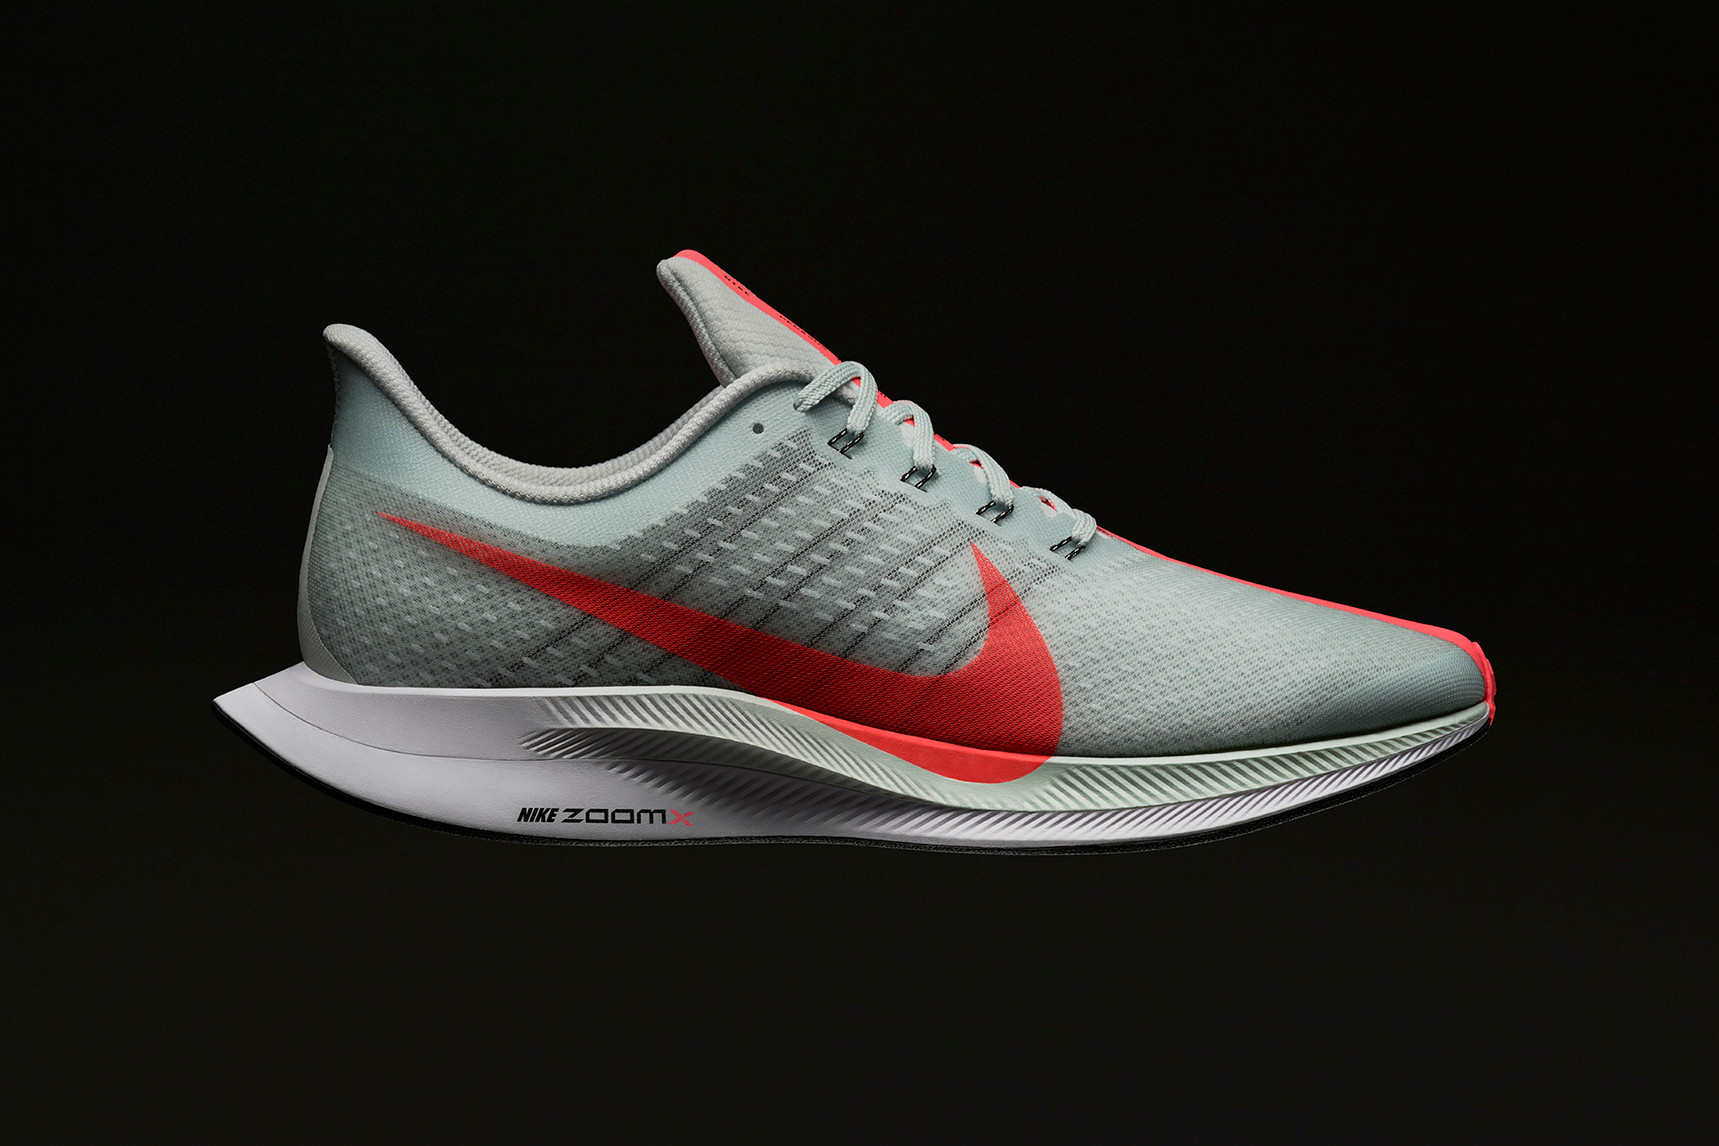 b790dc1c5481 Nike Zoom Pegasus Turbo First Closer Look Coming Soon Sneakers Kicks Shoes  Trainers Running Athletic Sprinting ...